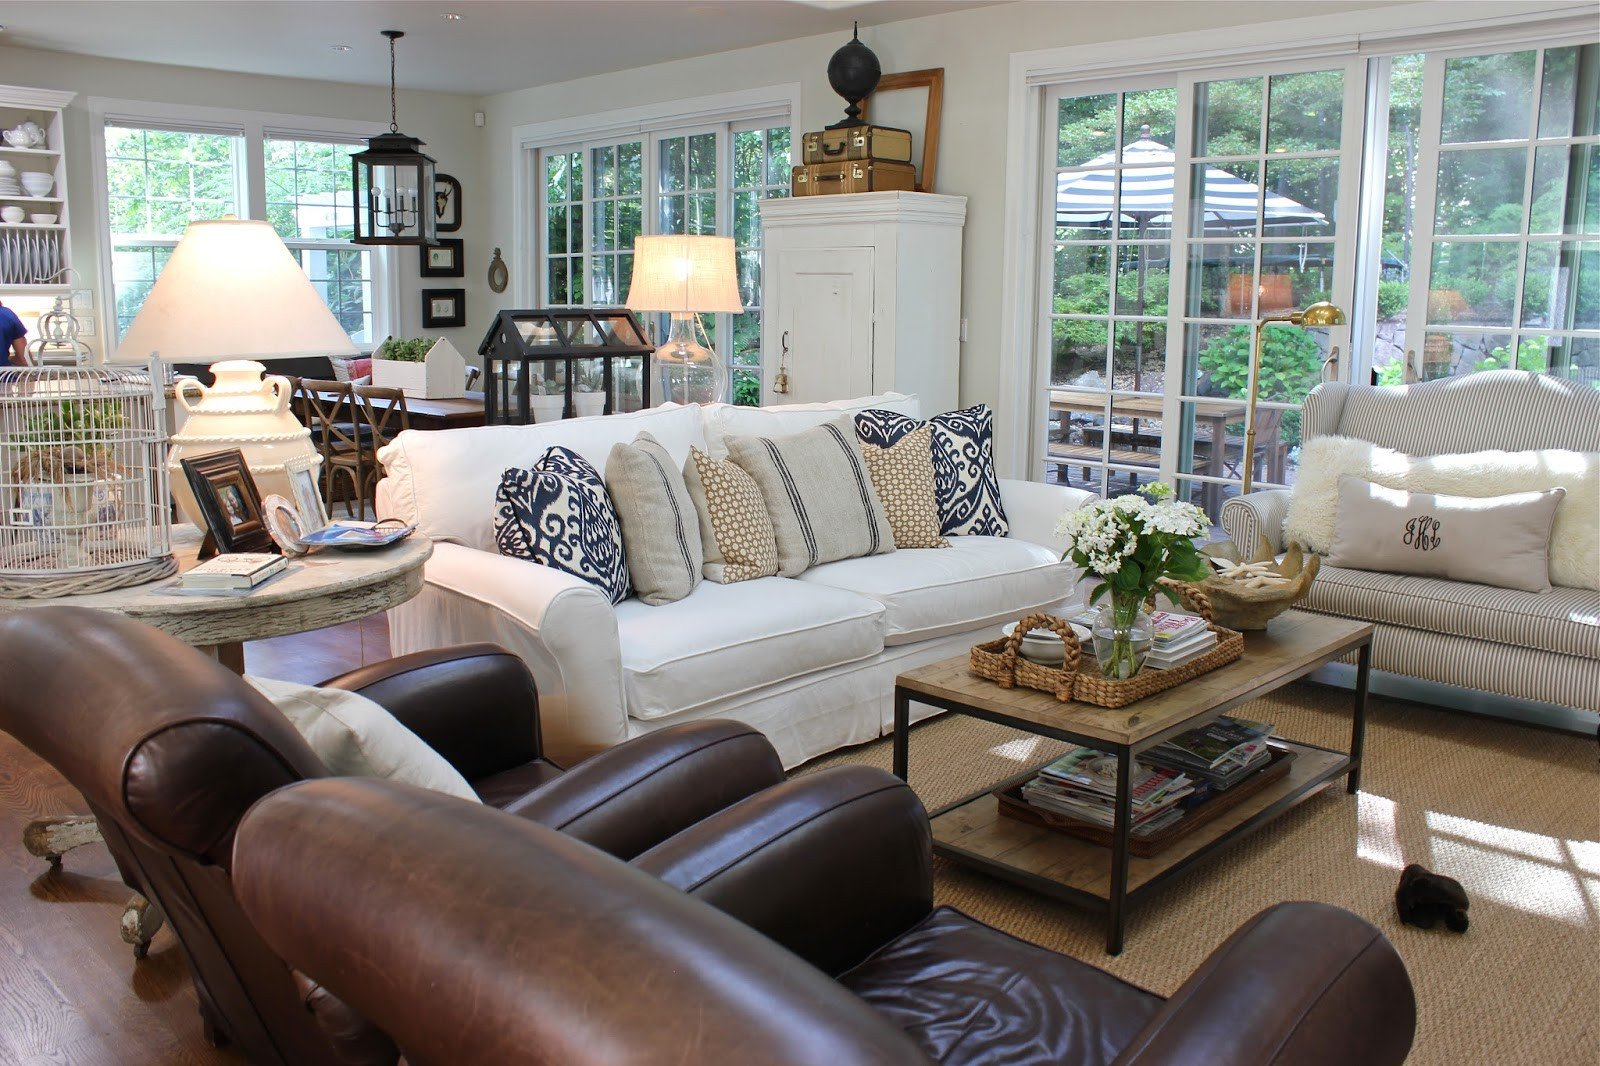 Comfortable Couches Living Room the Design Anatomy Of the Family Room